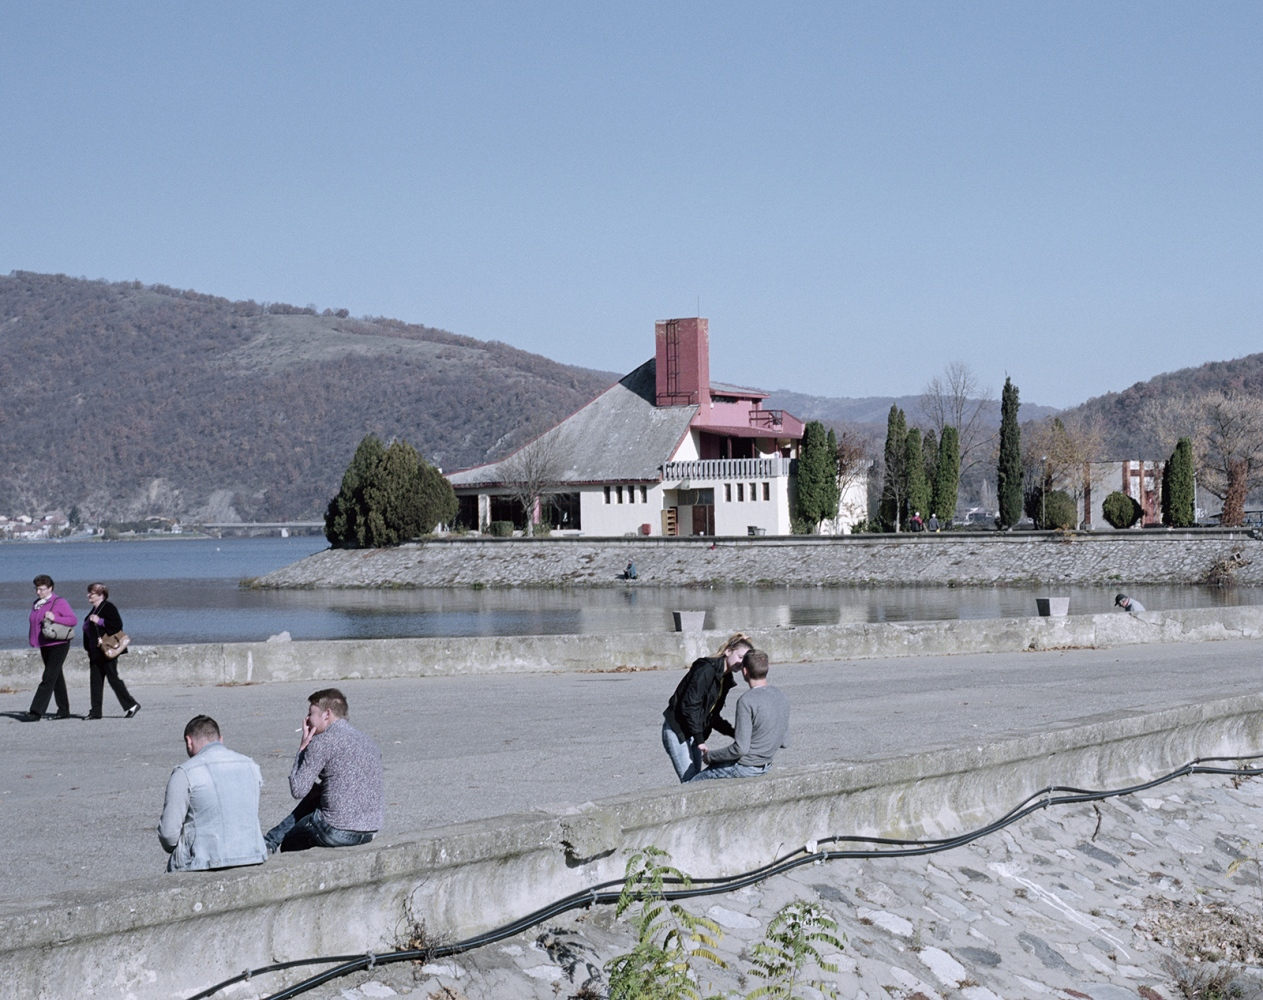 Romania, Orsova. Teenager chill out on the lake creted by a dam on the Danube River.